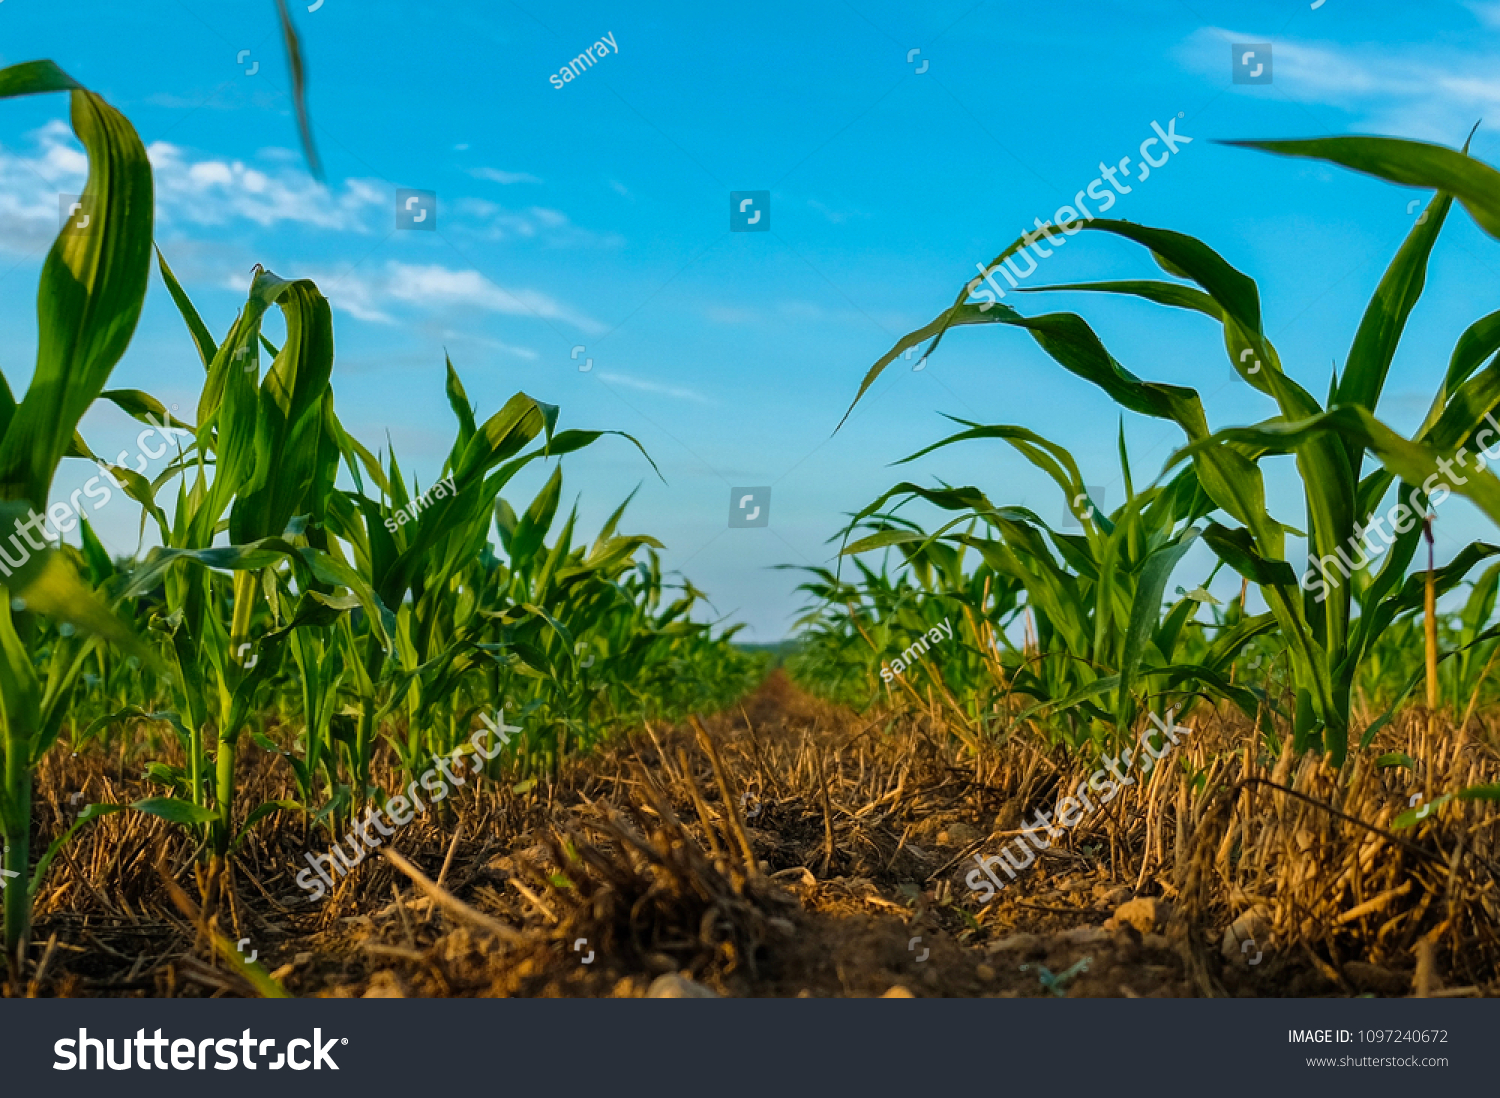 Young field corn grows in a no-till field over wheat stubble on a farm in the Raleigh area in North Carolina. No-till helps maintain healthy soil structure, and crop rotation helps soil nutrition.